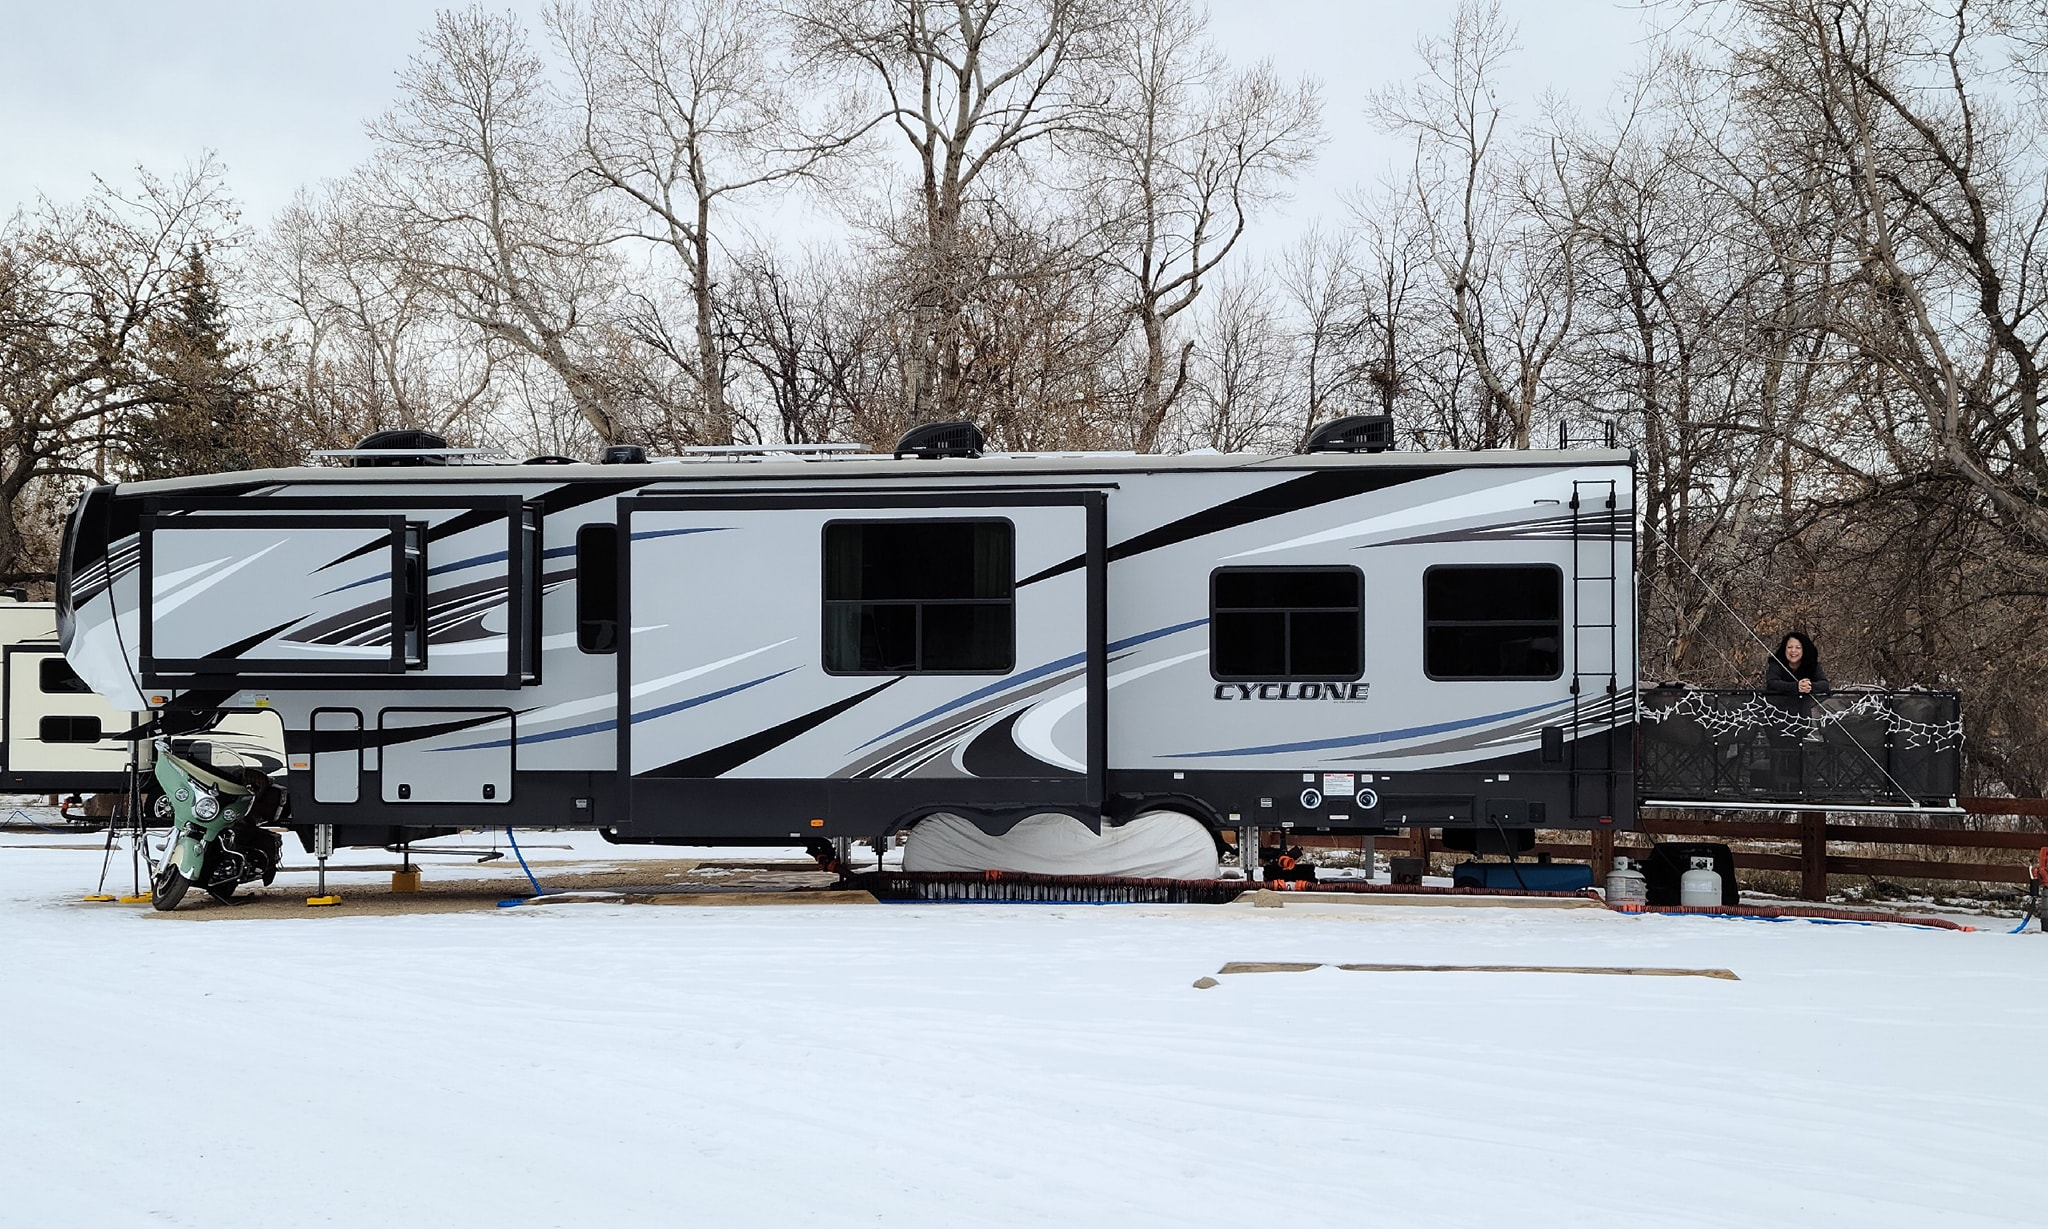 Our RV, parked in Lyons, Colorado in December